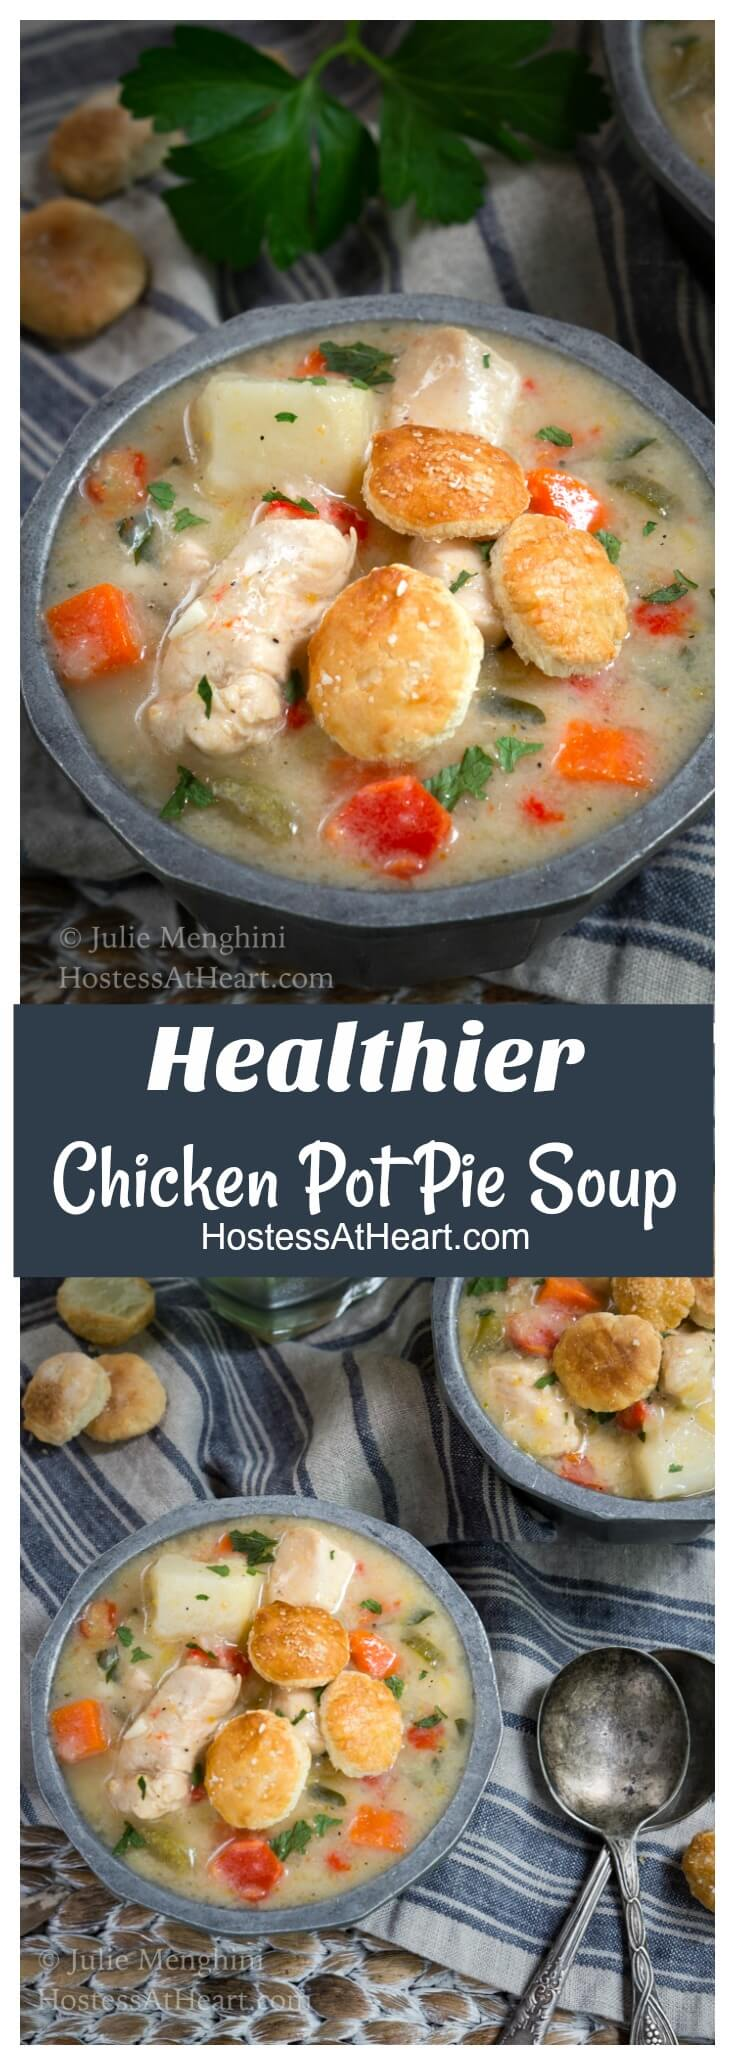 This Healthier Chicken Pot Pie Soup is a delicious and creamy recipe.  The only thing missing is all of the extra fat, sodium, and calories. HostessAtHeart.com #souprecipes, #soup, #chickenrecipes, #Chicken, #cookinglight, #healthyrecipes #healthy #healthyfood